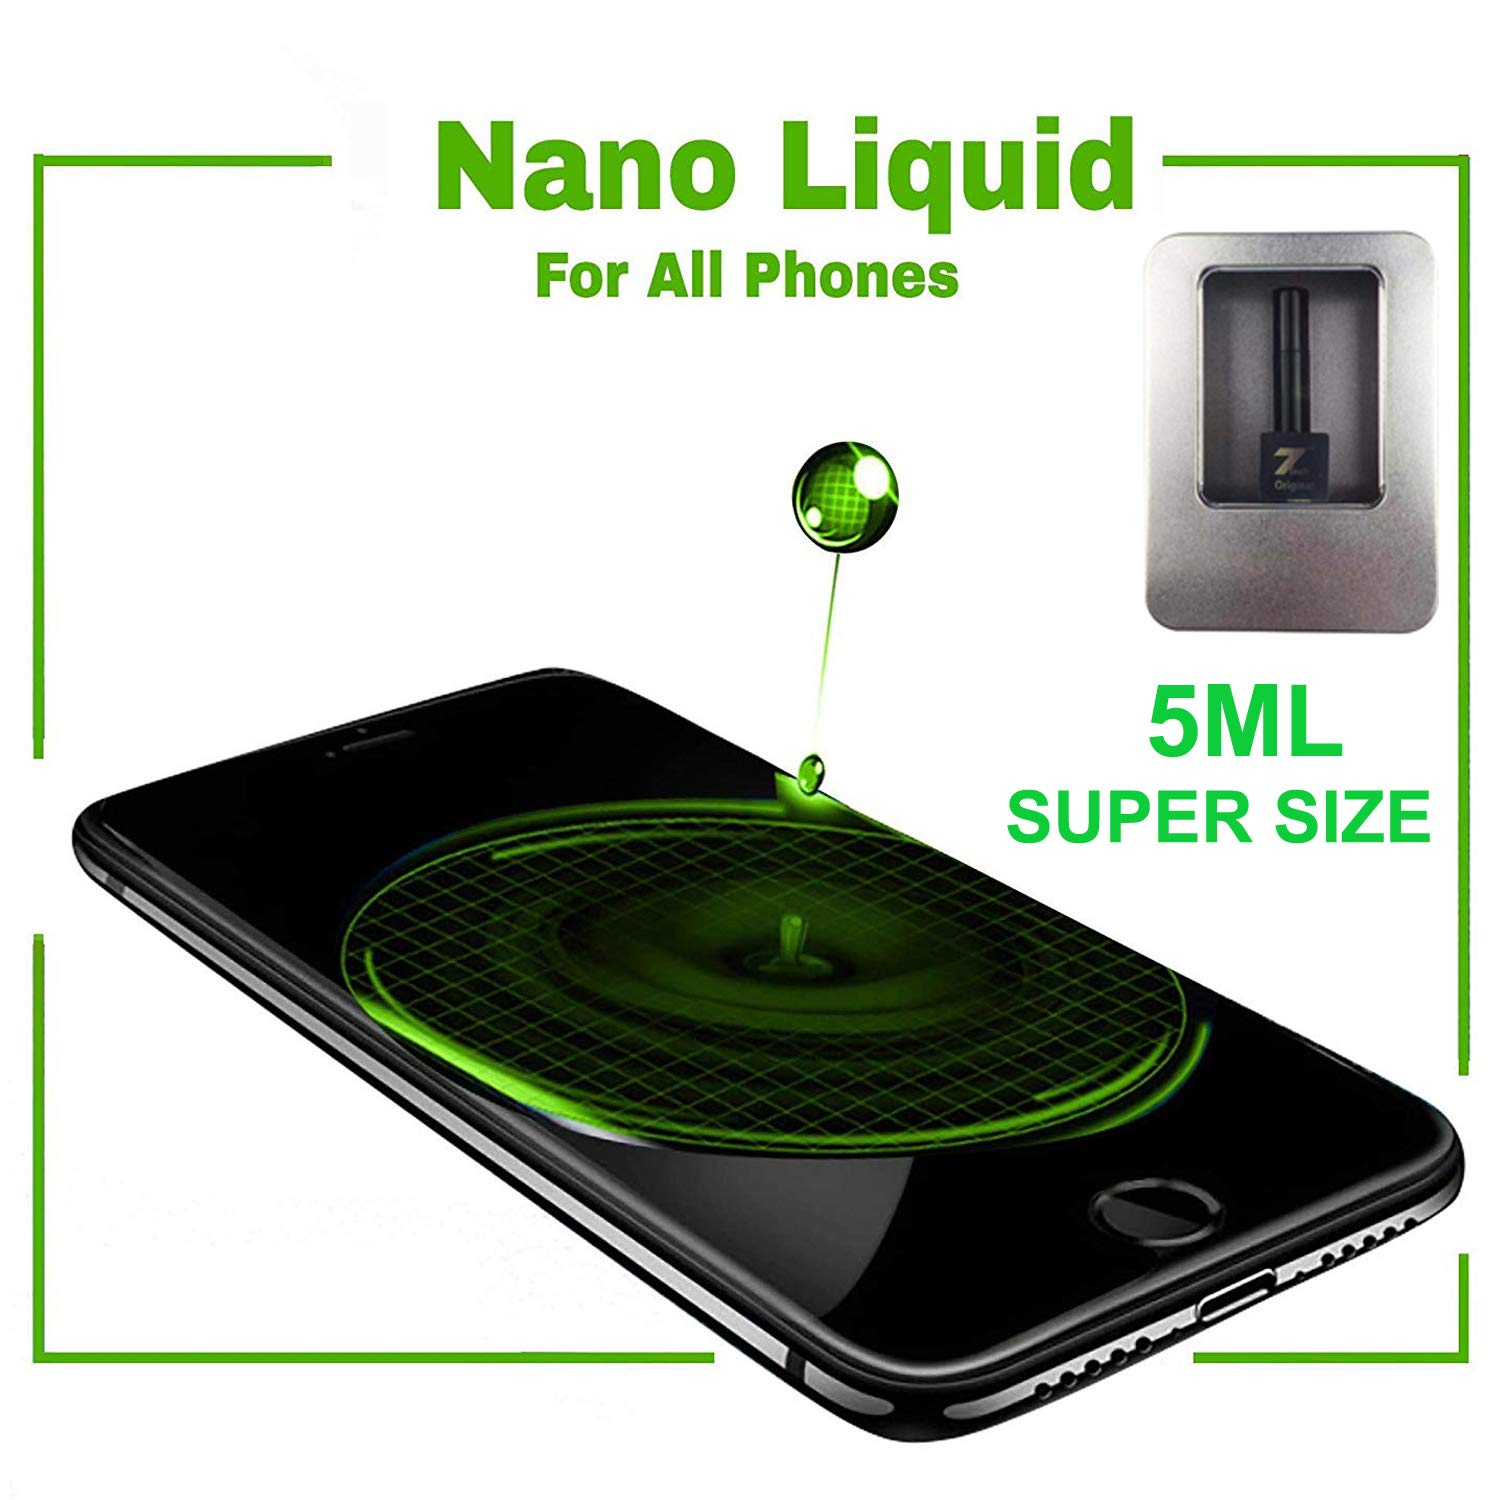 Original Nano Liquid Screen Protector, Scratch Resistant 9H Hardness for All Smartphones, Tablets, Watches Glasses, Cameras. Nano Coating (Aluminium, 5 ml XL Super Size) by 7TECH